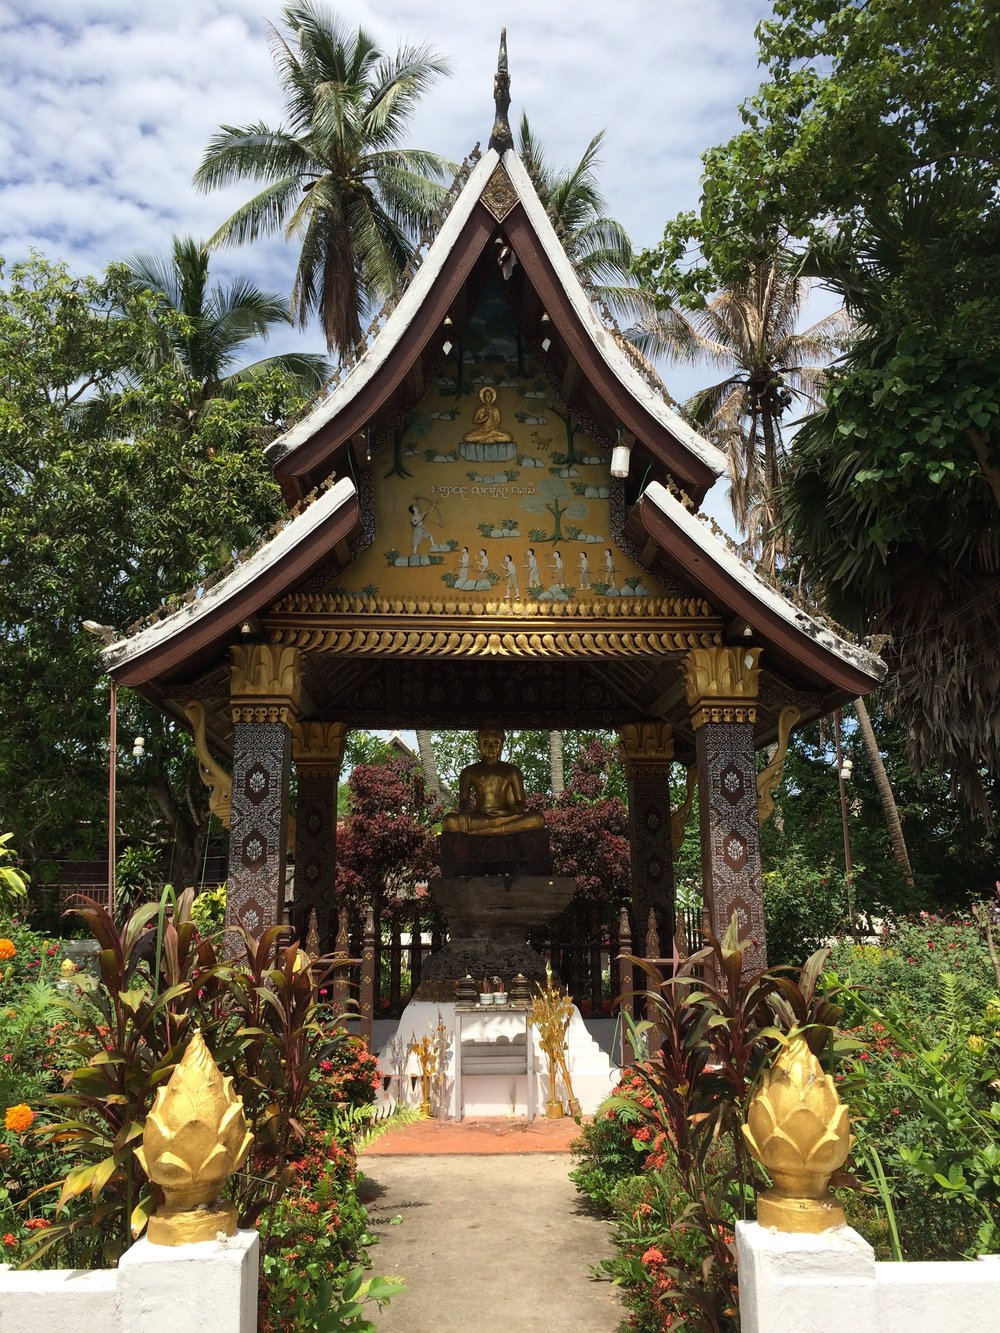 Is there a reason that Lao temples bring in nature?